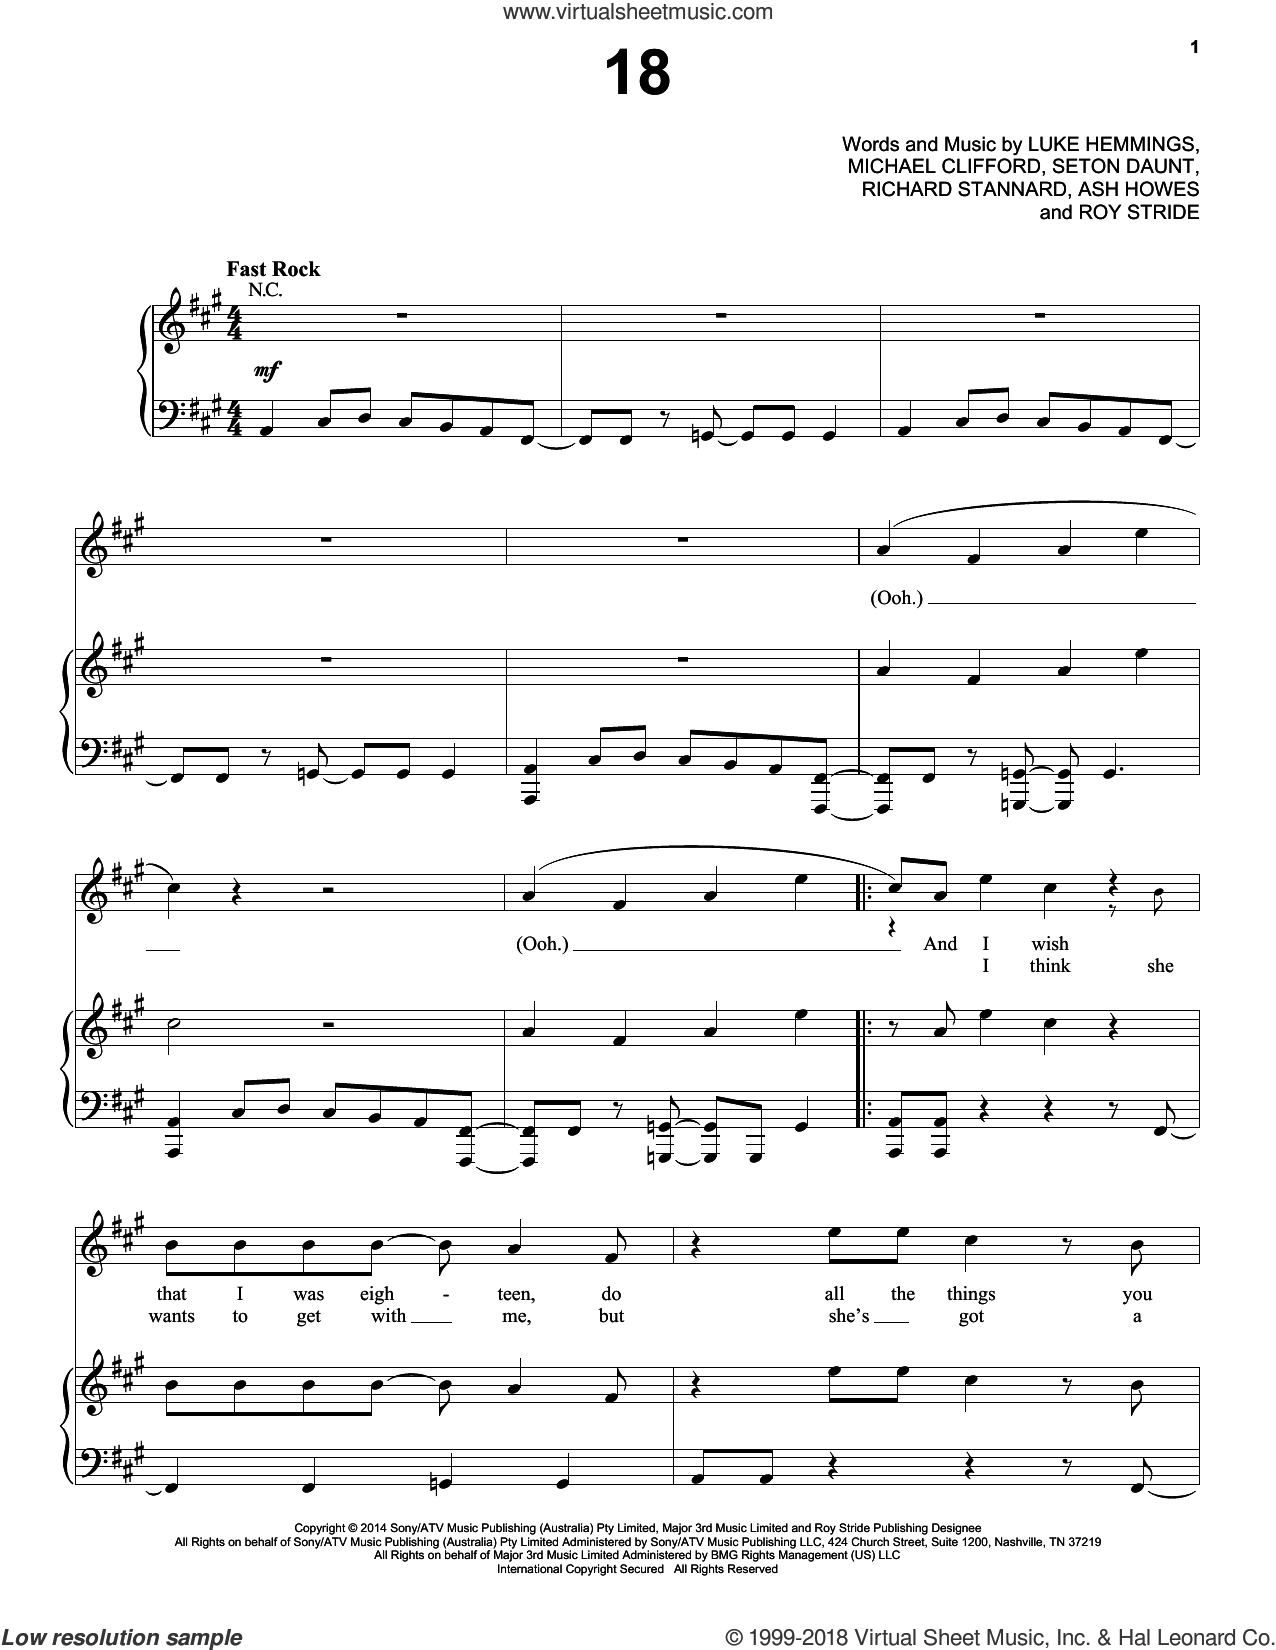 18 sheet music for voice, piano or guitar by 5 Seconds of Summer, Ash Howes, Luke Hemmings, Michael Clifford, Richard Stannard, Roy Stride and Seton Daunt, intermediate skill level